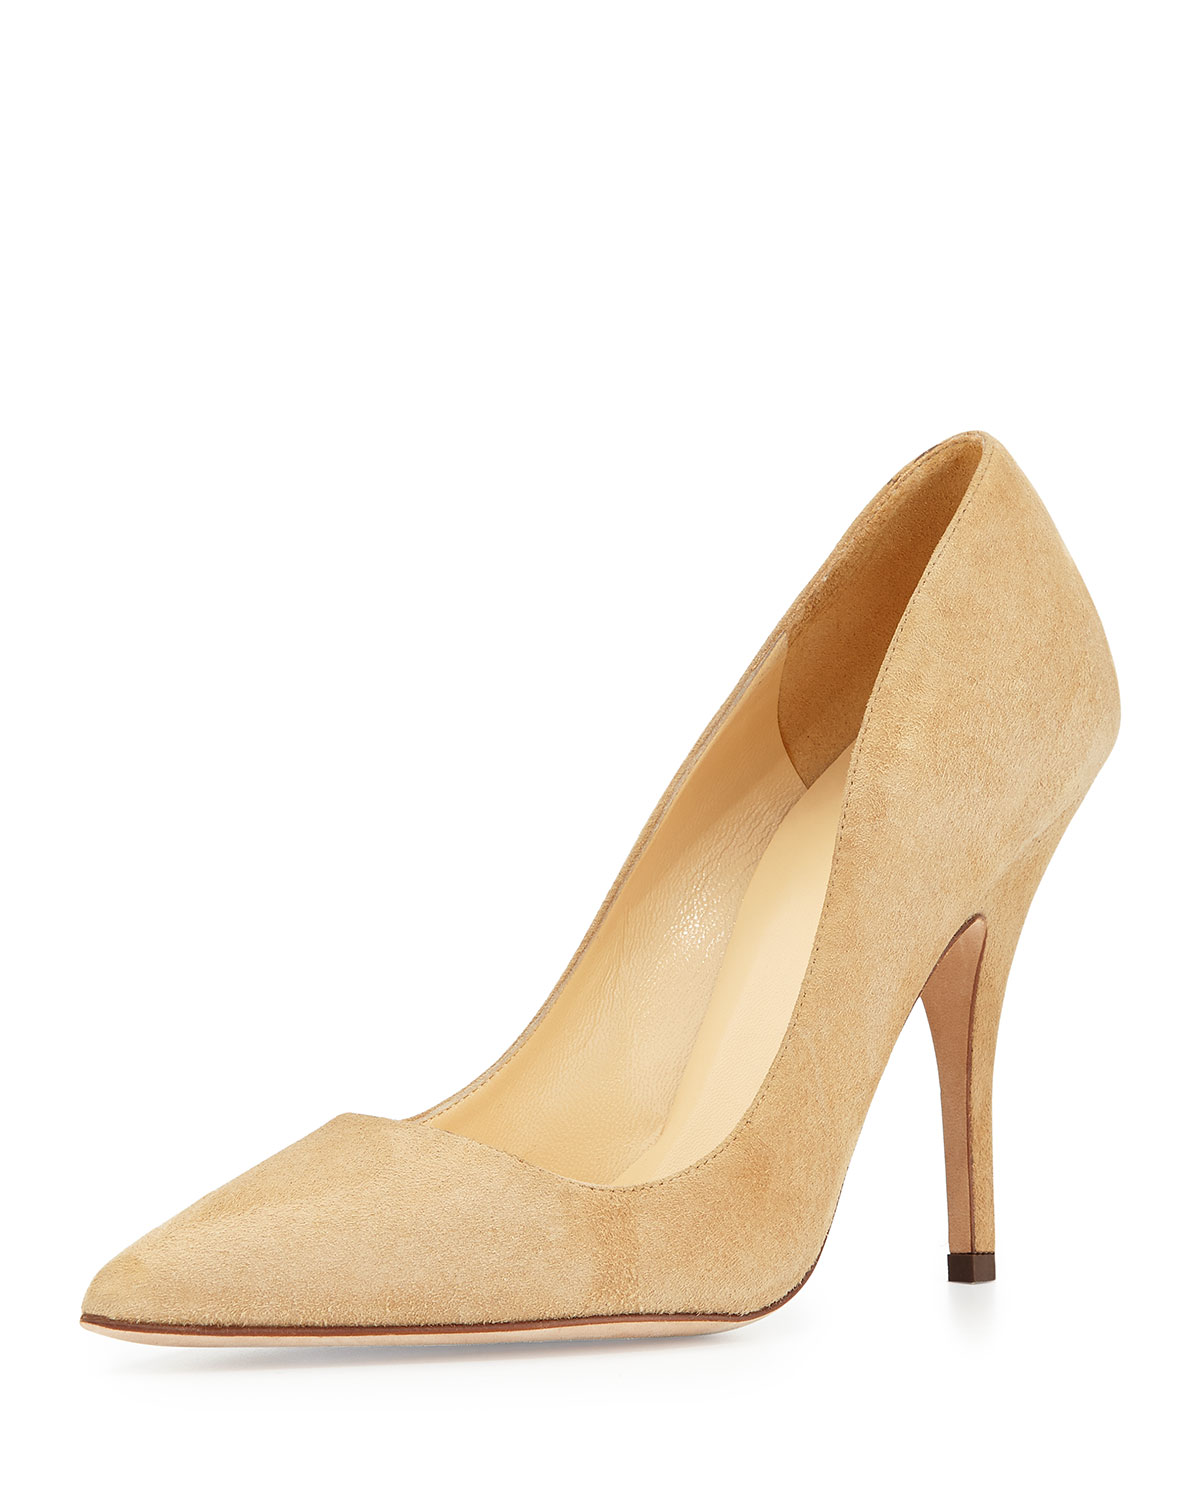 44695b01851f kate spade new york licorice suede point-toe pumps